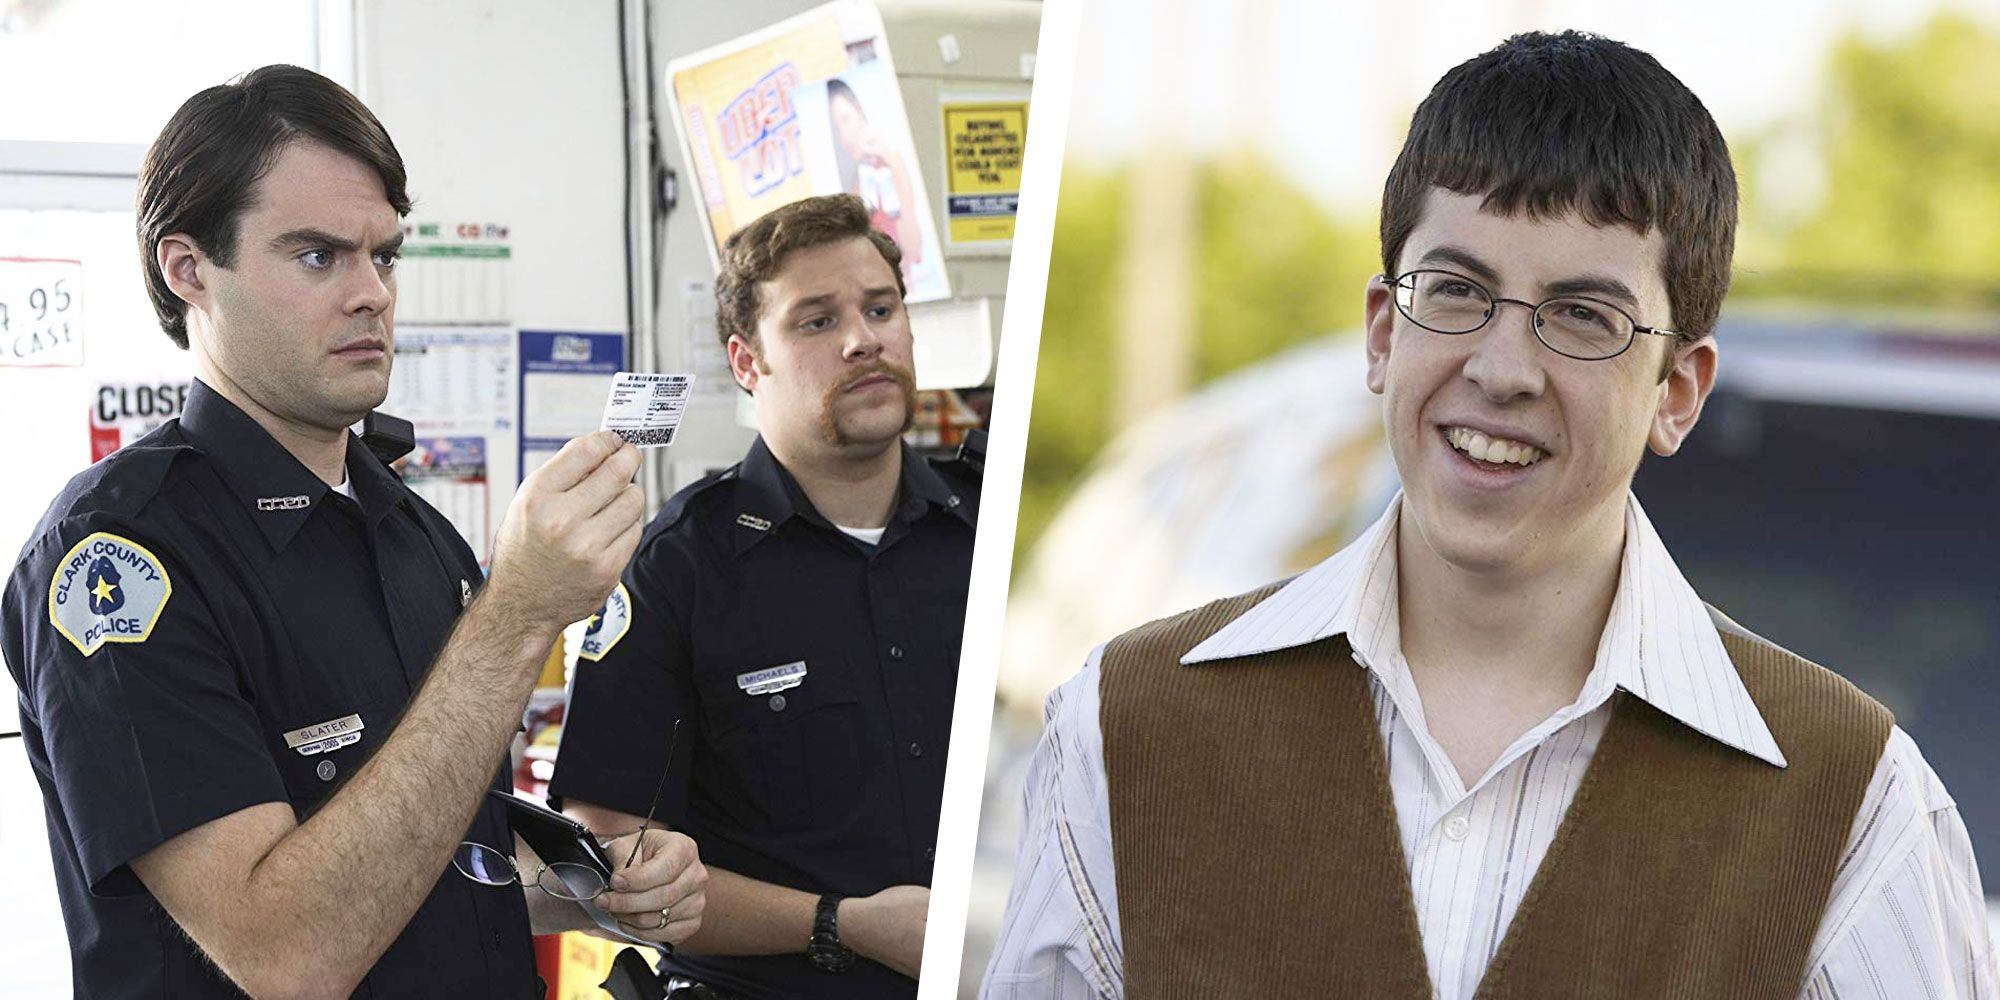 A Man Was Arrested in an Iowa Bar for Having a McLovin Fake ID